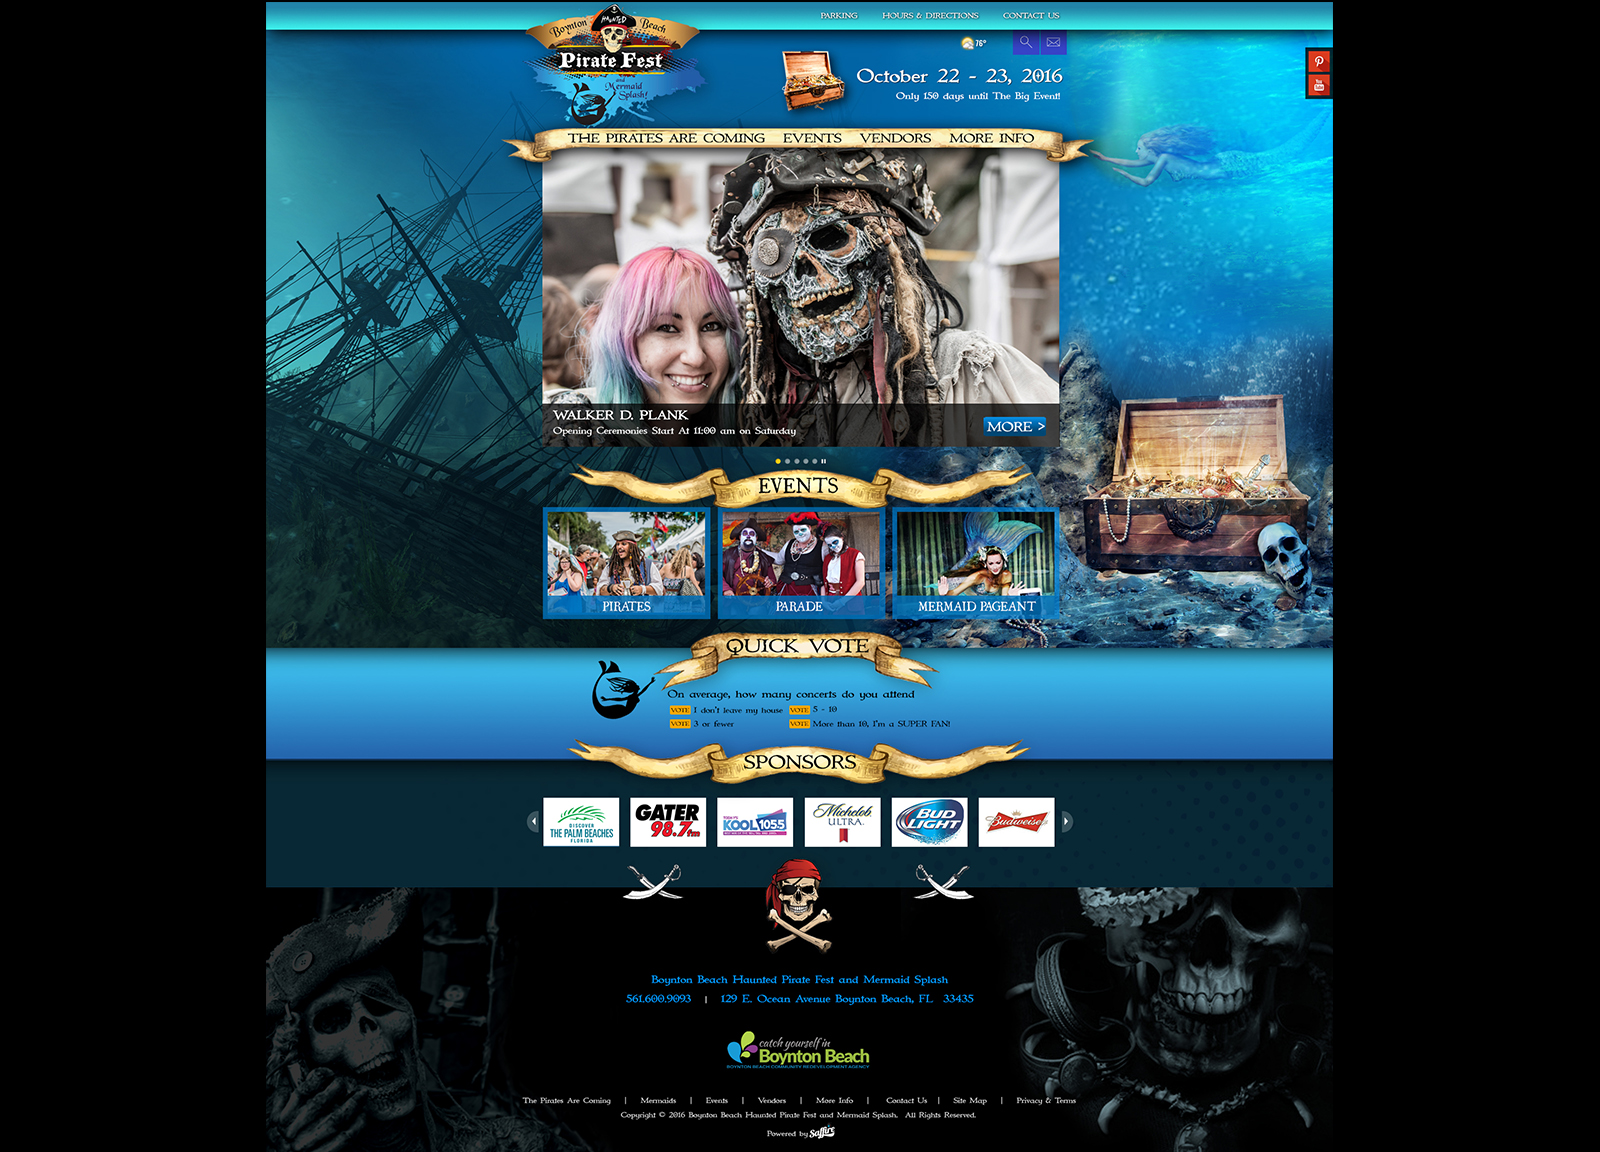 PirateFest_Website